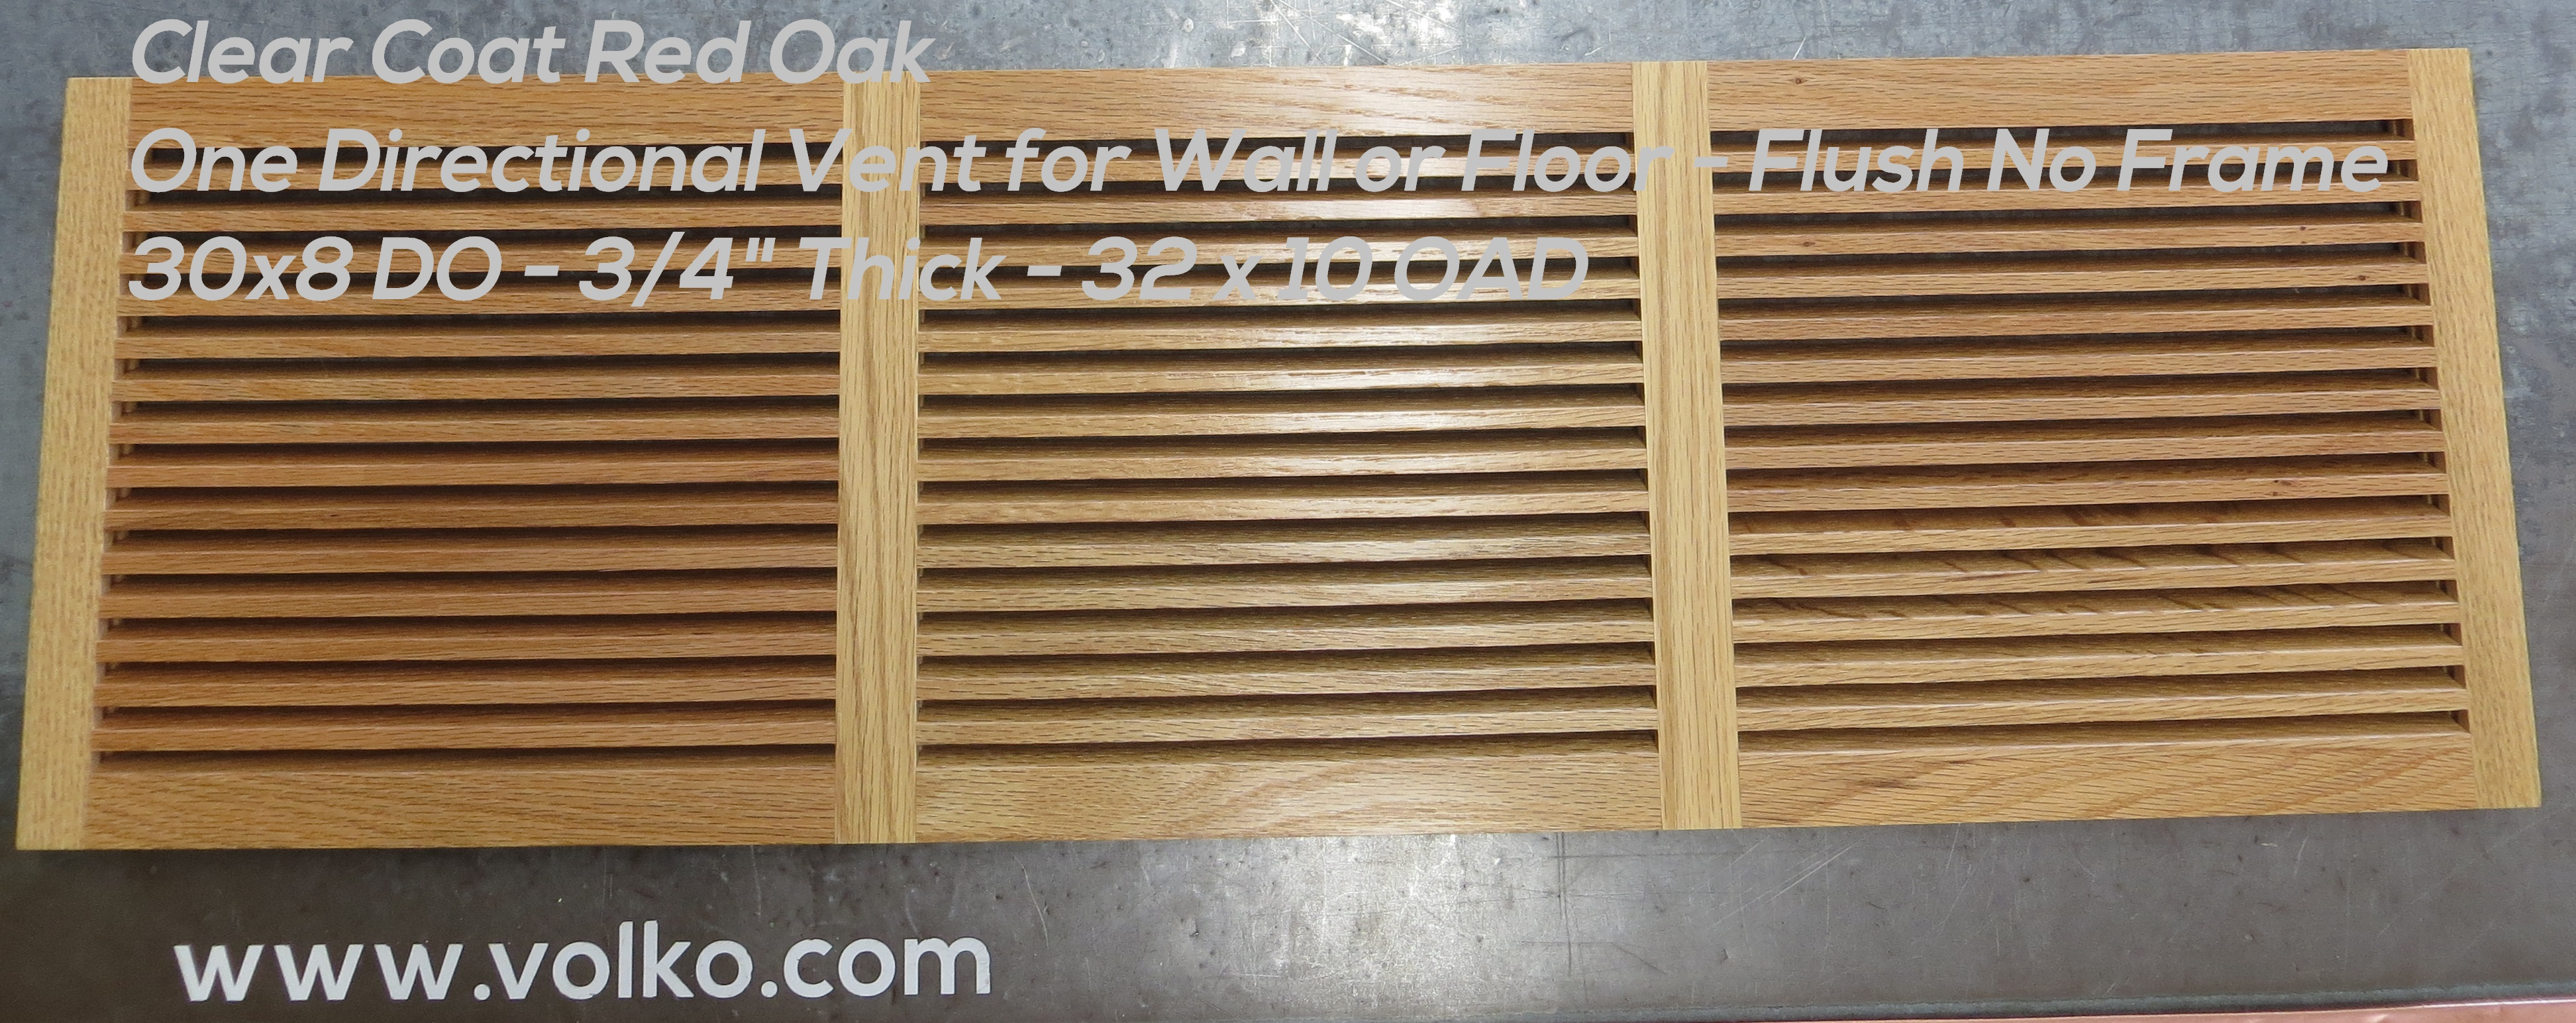 custom red oak wood vent